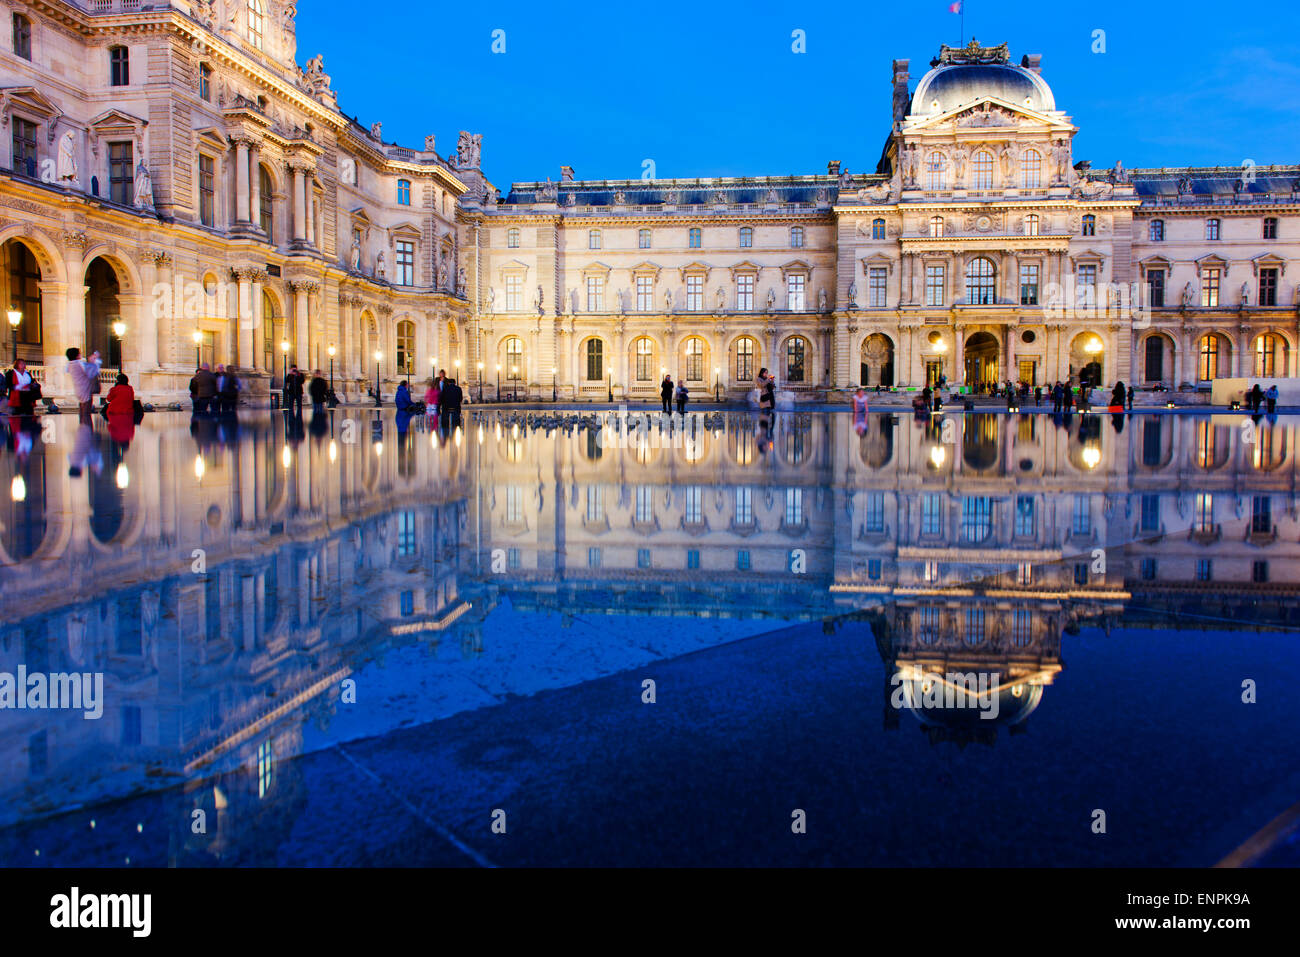 Louvre Museum at dusk, the blue hour, with reflections. - Stock Image